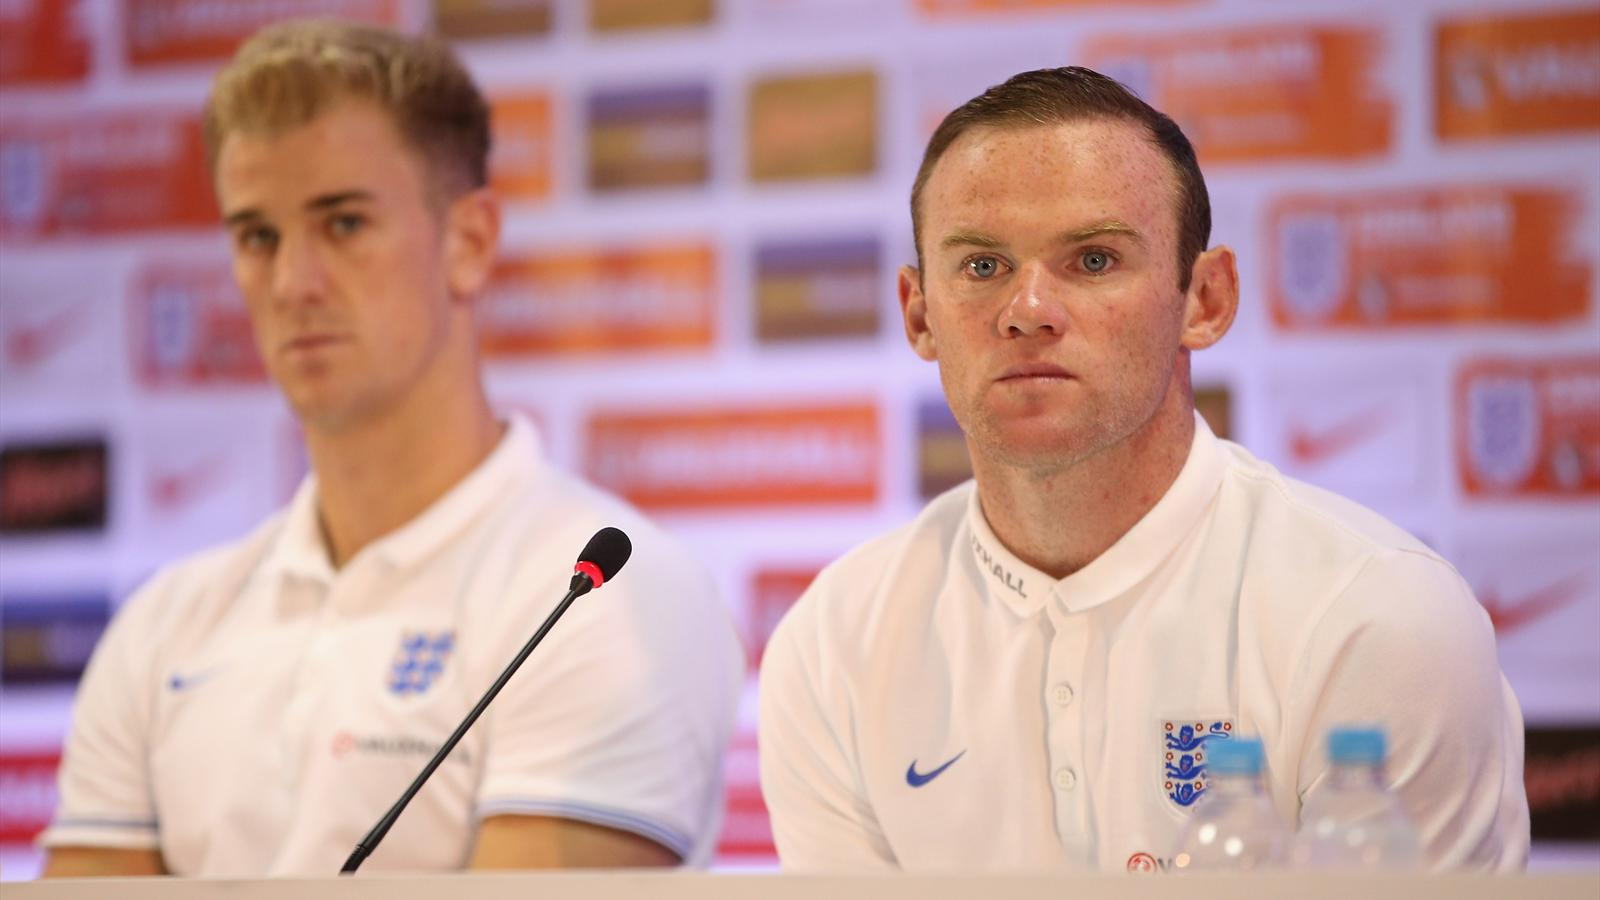 Joe Hart and Wayne Rooney faces the media in a press conference after an England training session at the Urca Military Base on June 21, 2014 in Rio de Janeiro, Brazil (Getty)